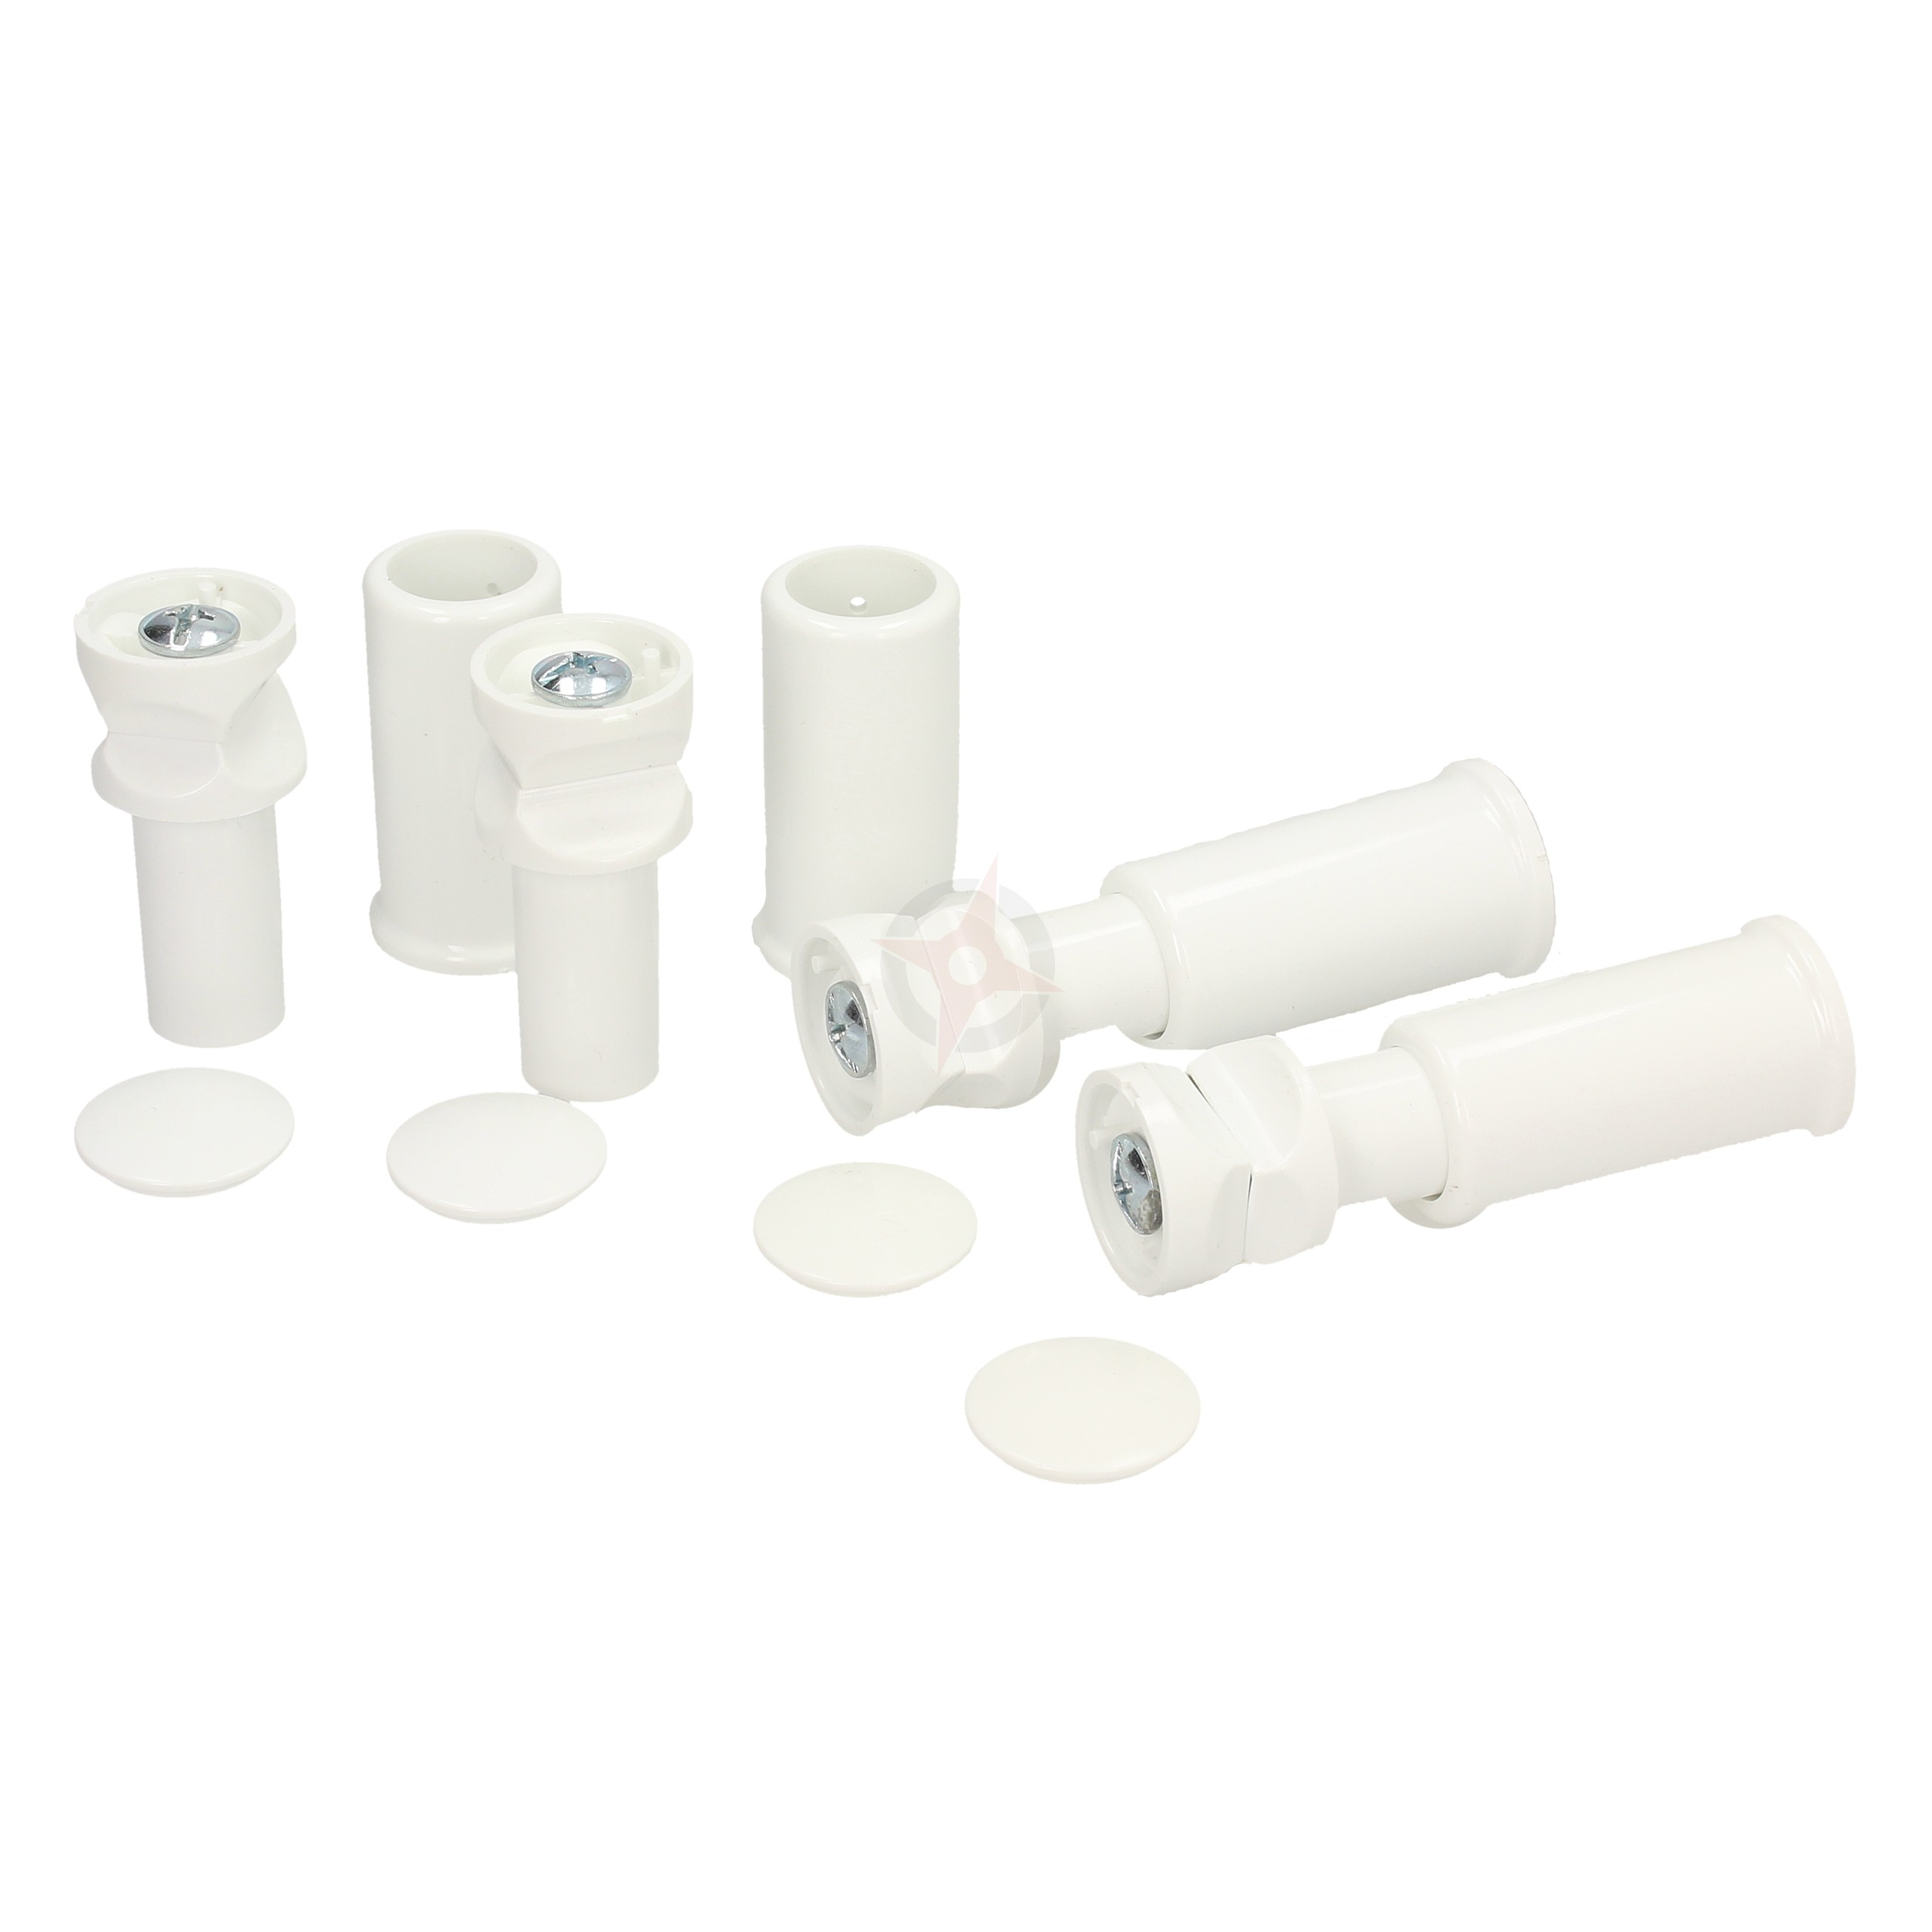 Revive White Spare Towel Rail Wall Mounting Brackets, Set of 4